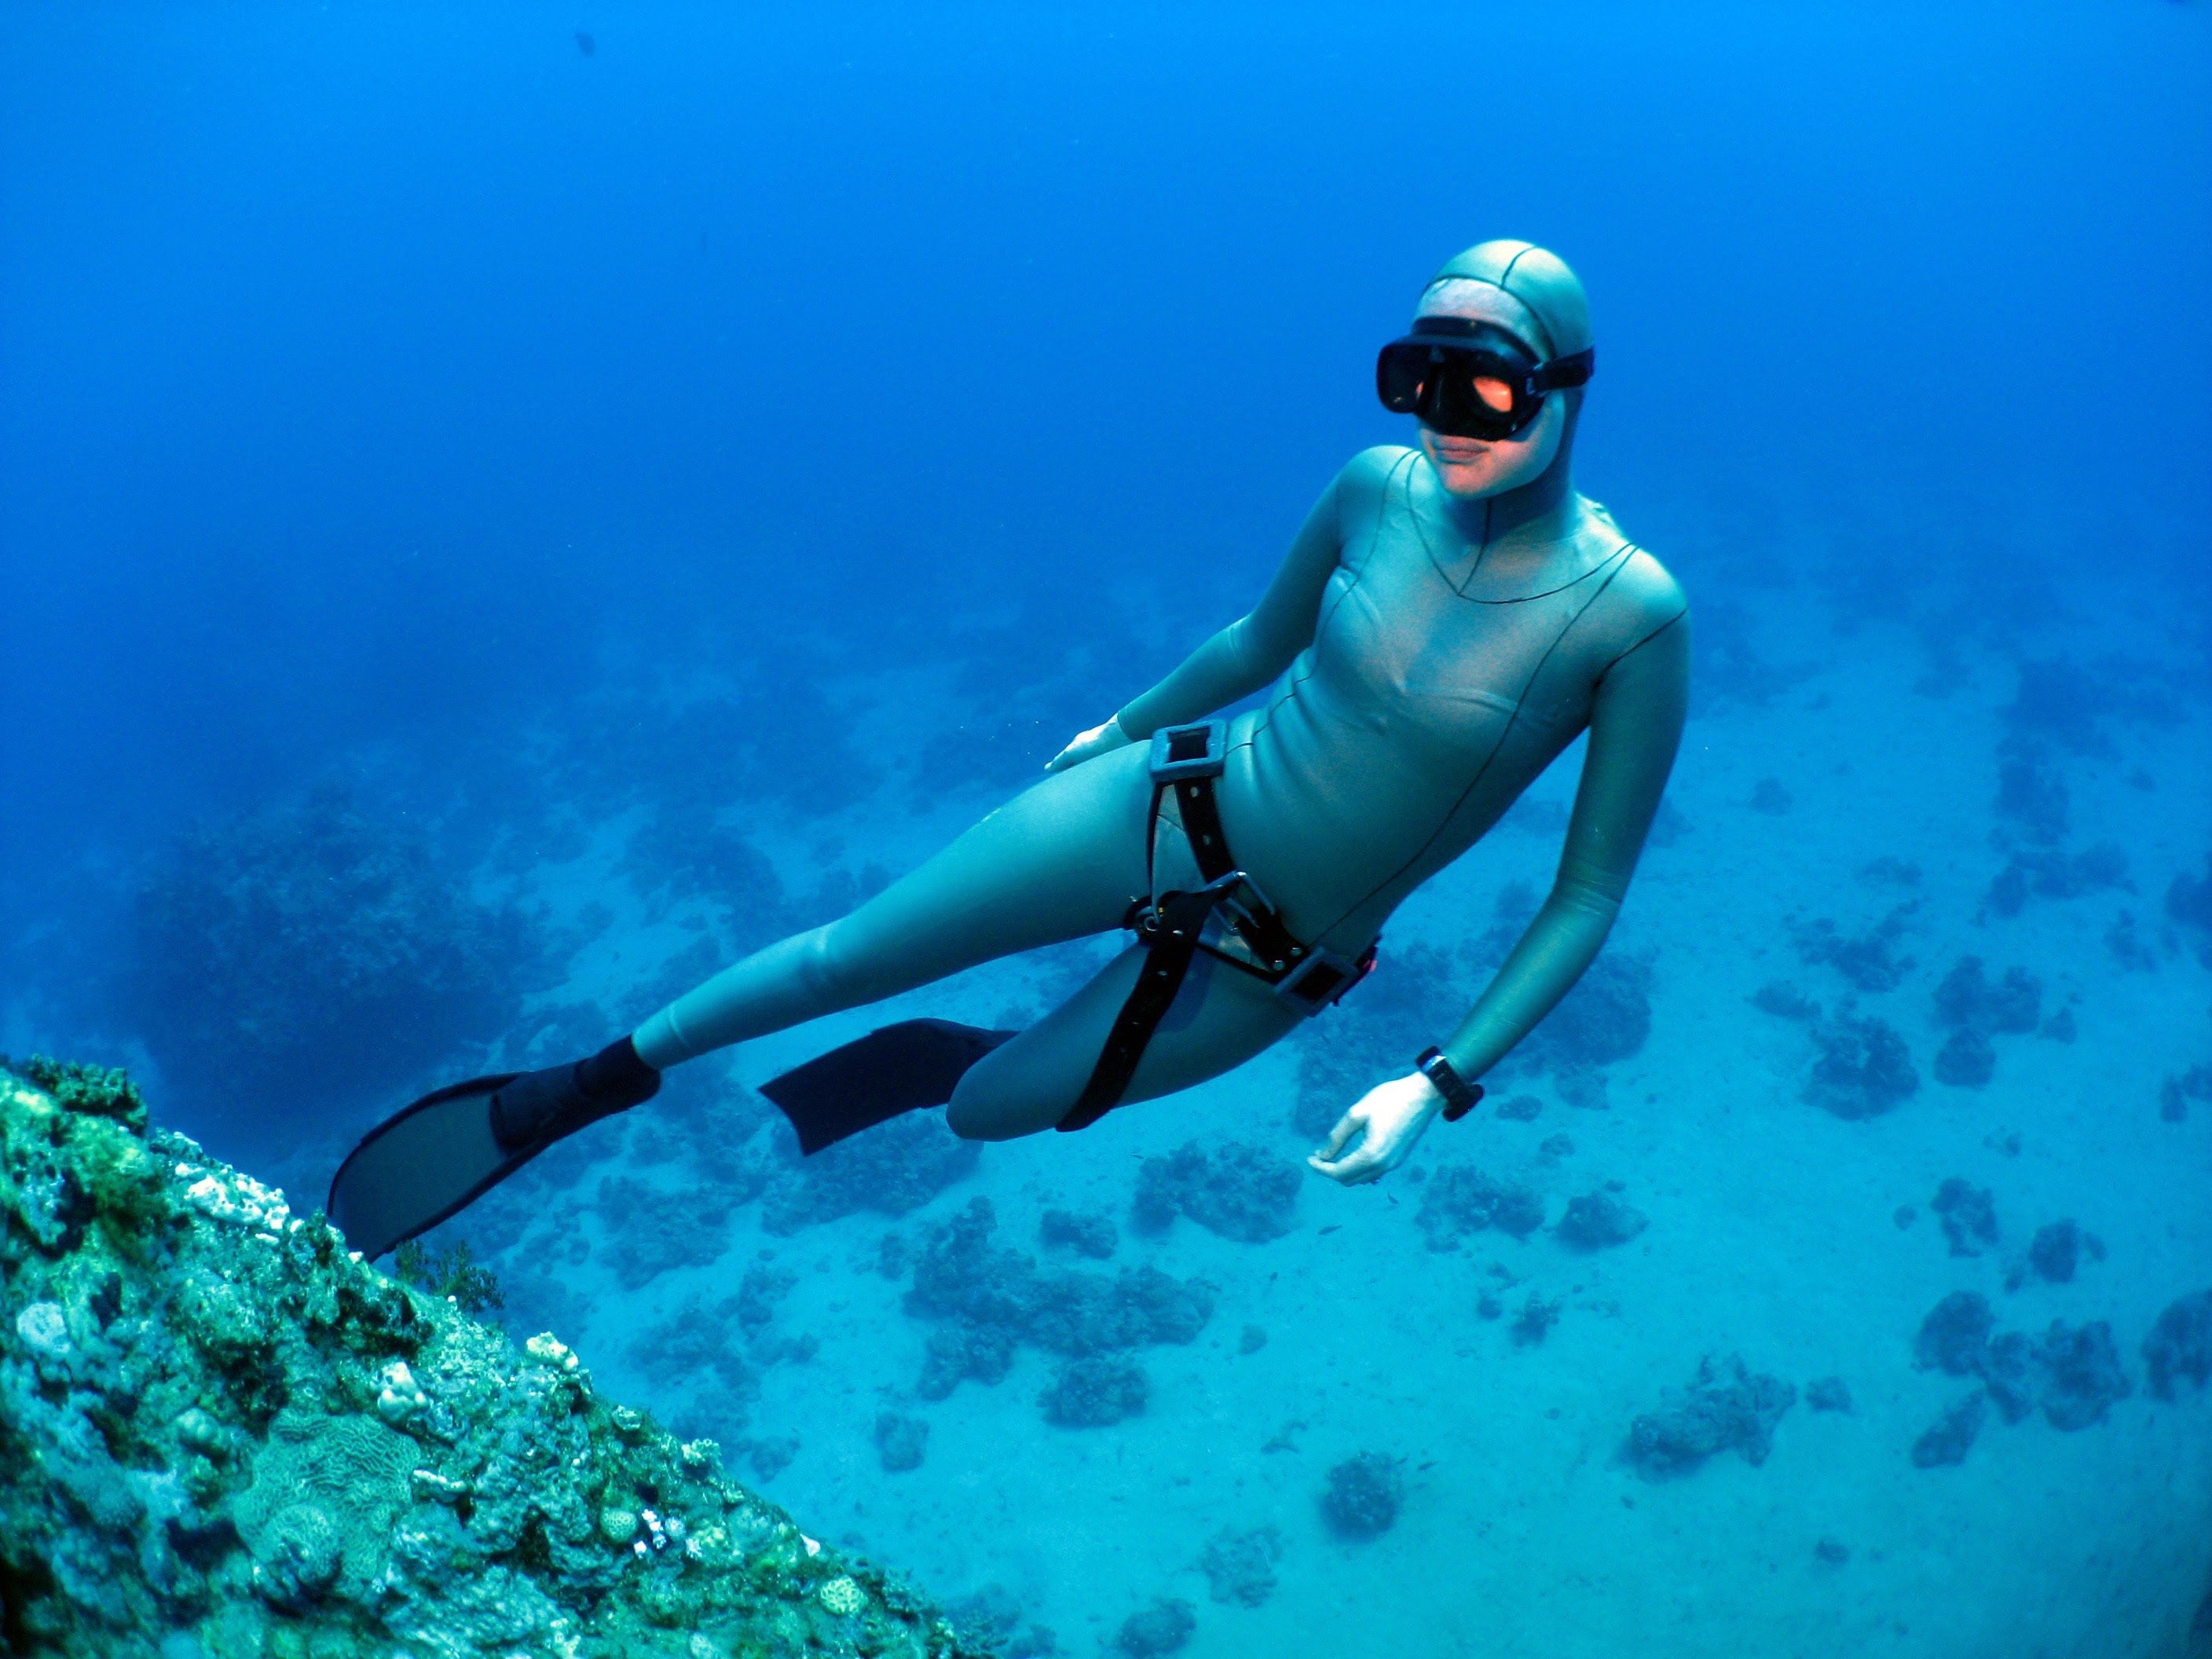 Pin by 2 on fridajving pinterest wetsuit and scubas here is a list of free diving locations around the world to enjoy some underwater adventure to gain liberating and serene experiences xflitez Choice Image